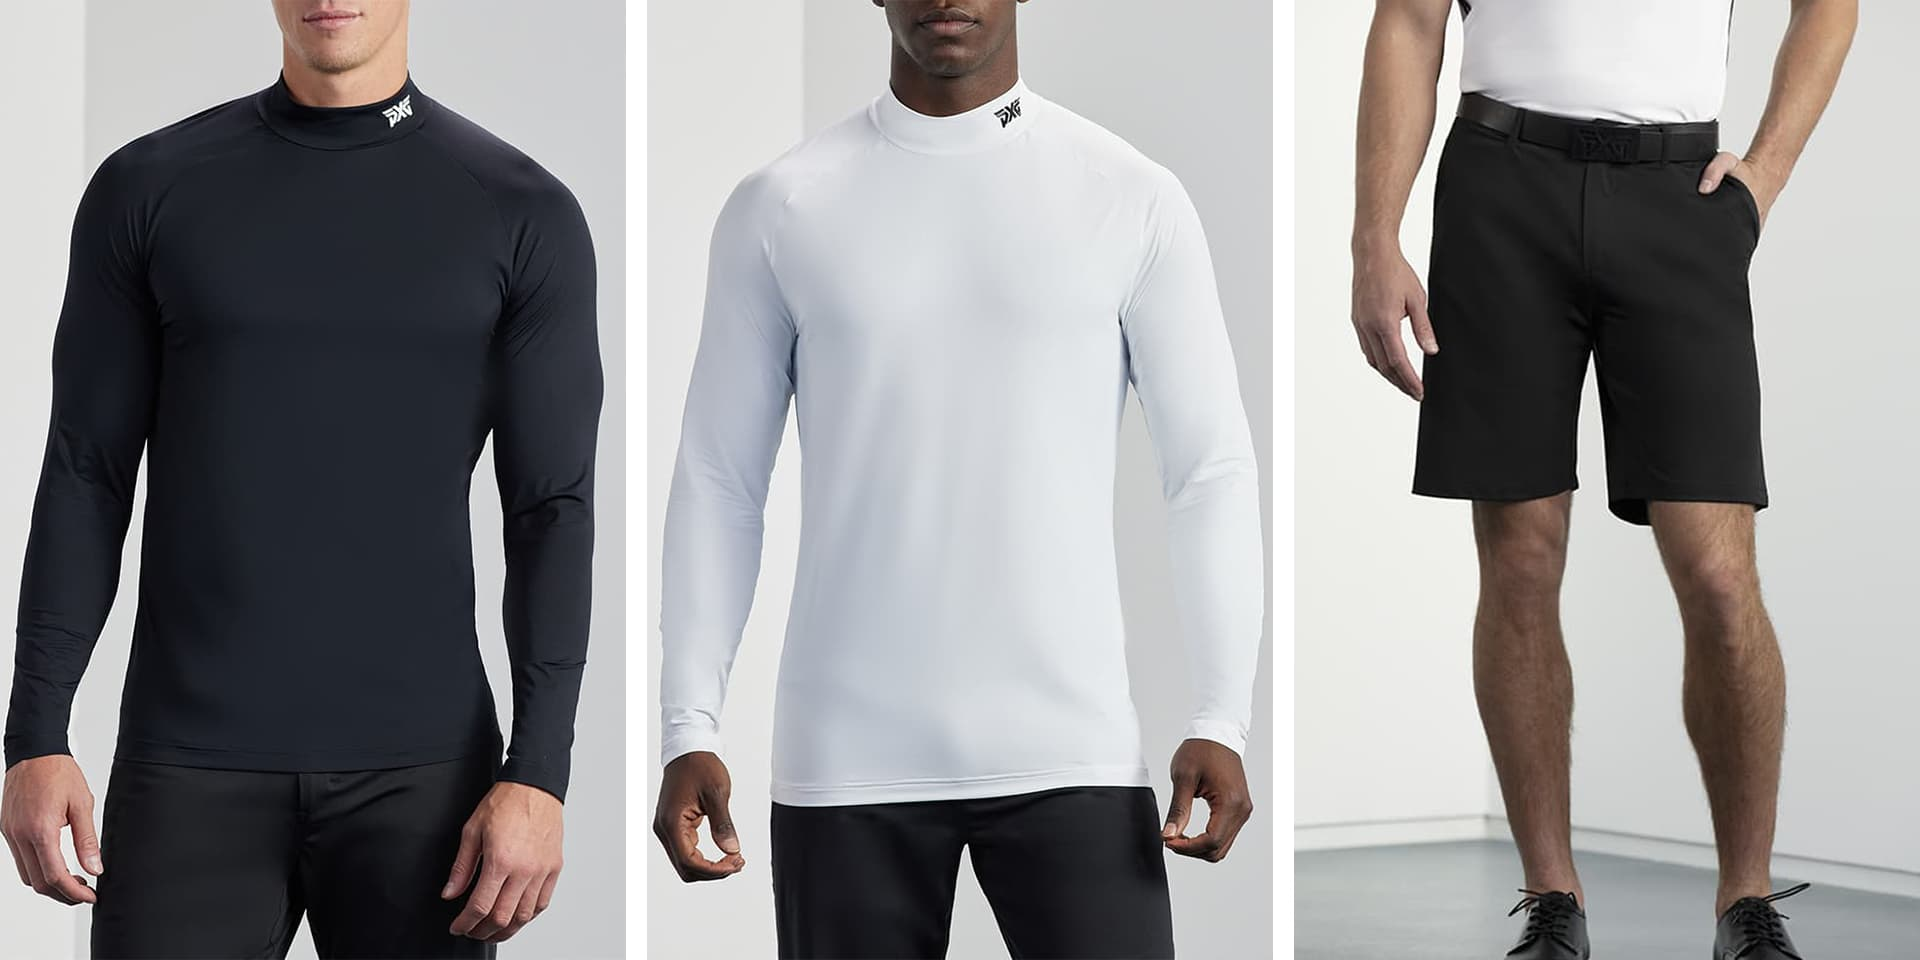 PXG Men's Essential Base Layers and Golf Shorts